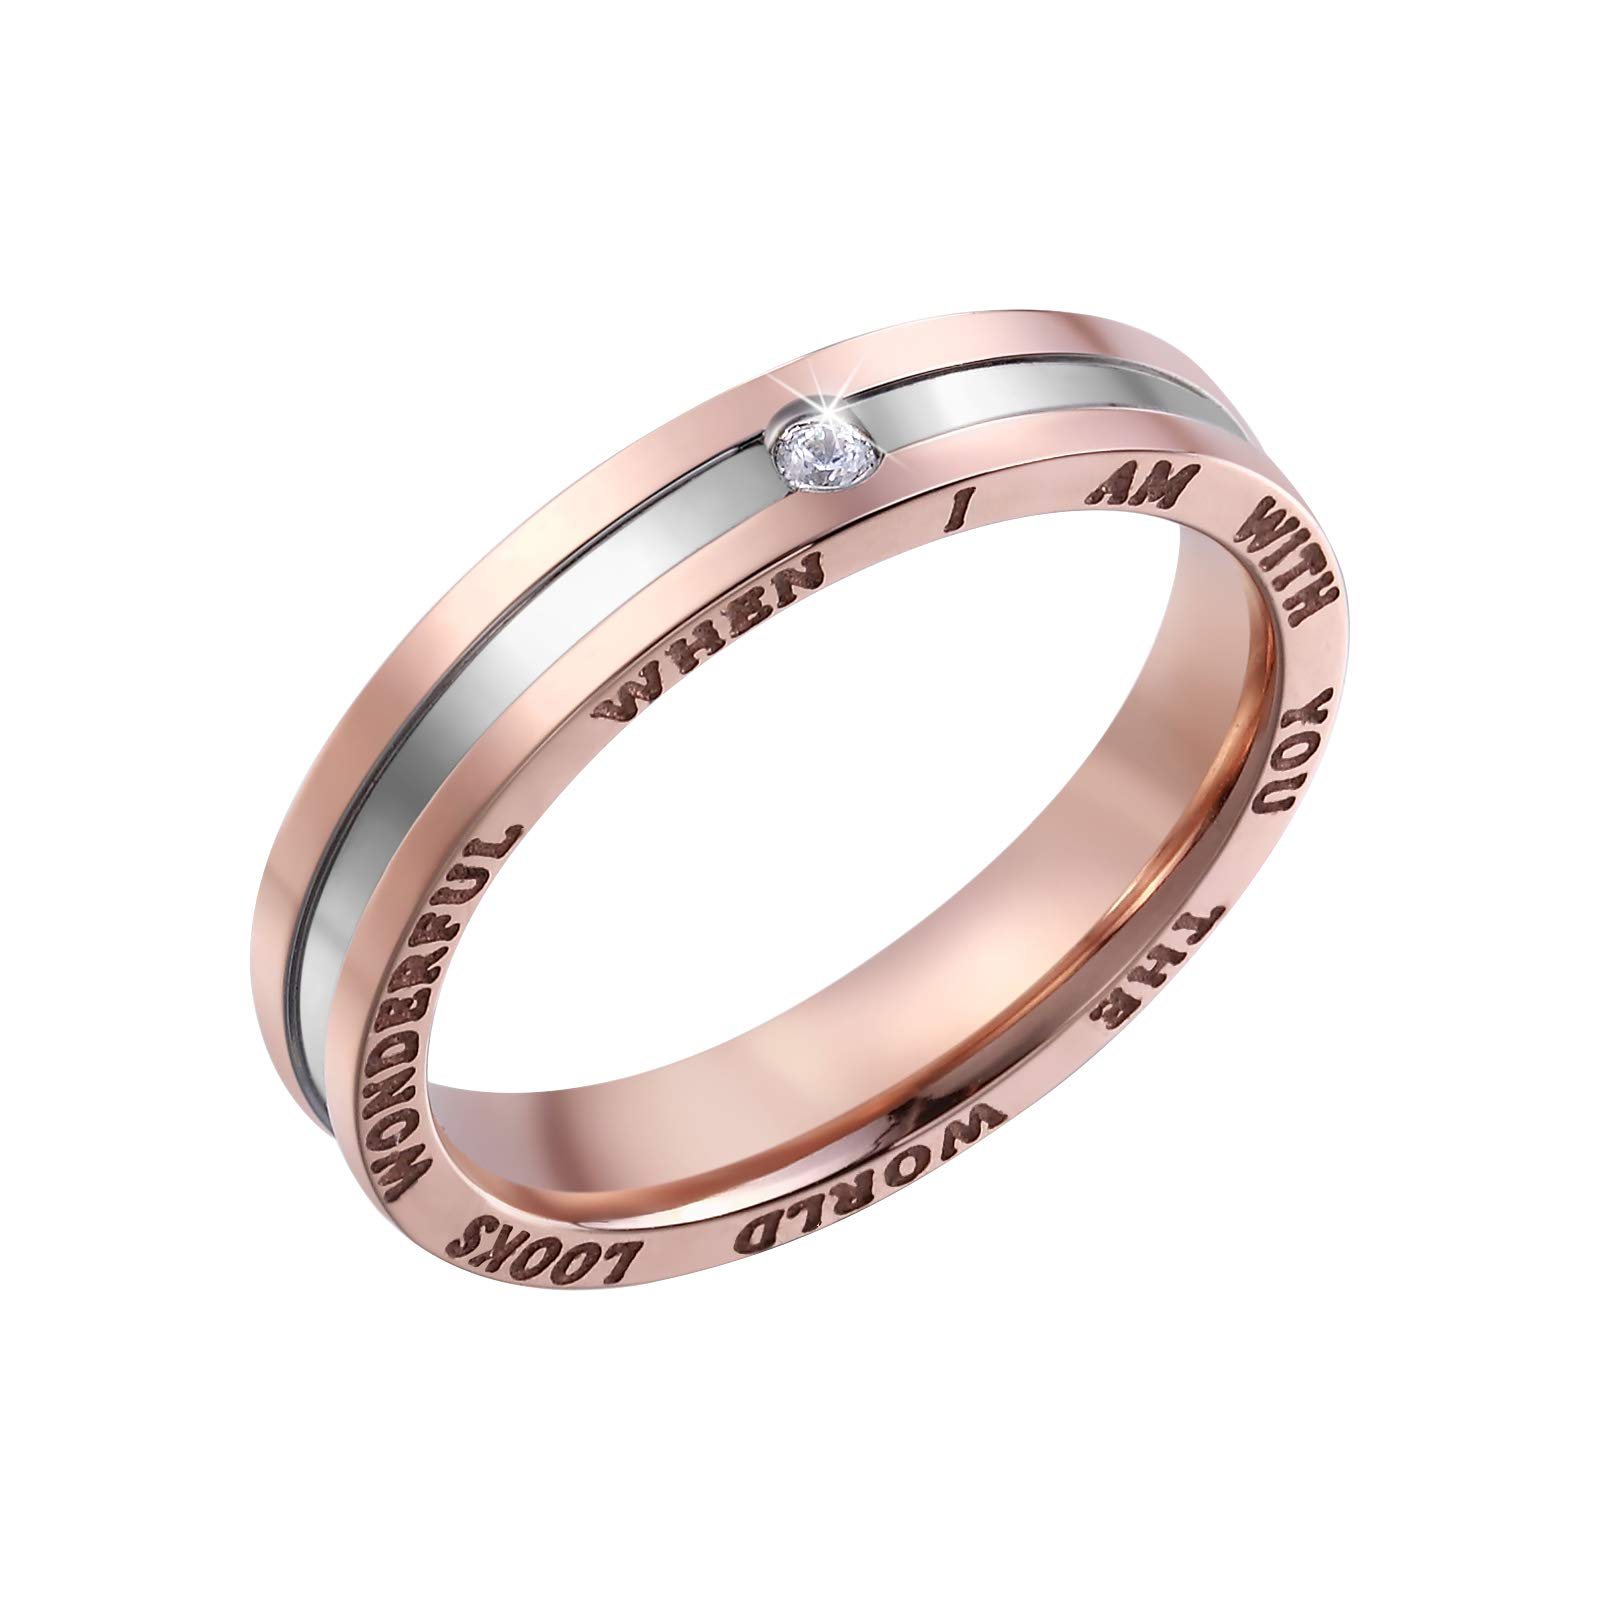 Dec.bells Silver Rose Gold Two Tone Stainless Steel Promise Ring Band Small Ring for Her (Size 5)